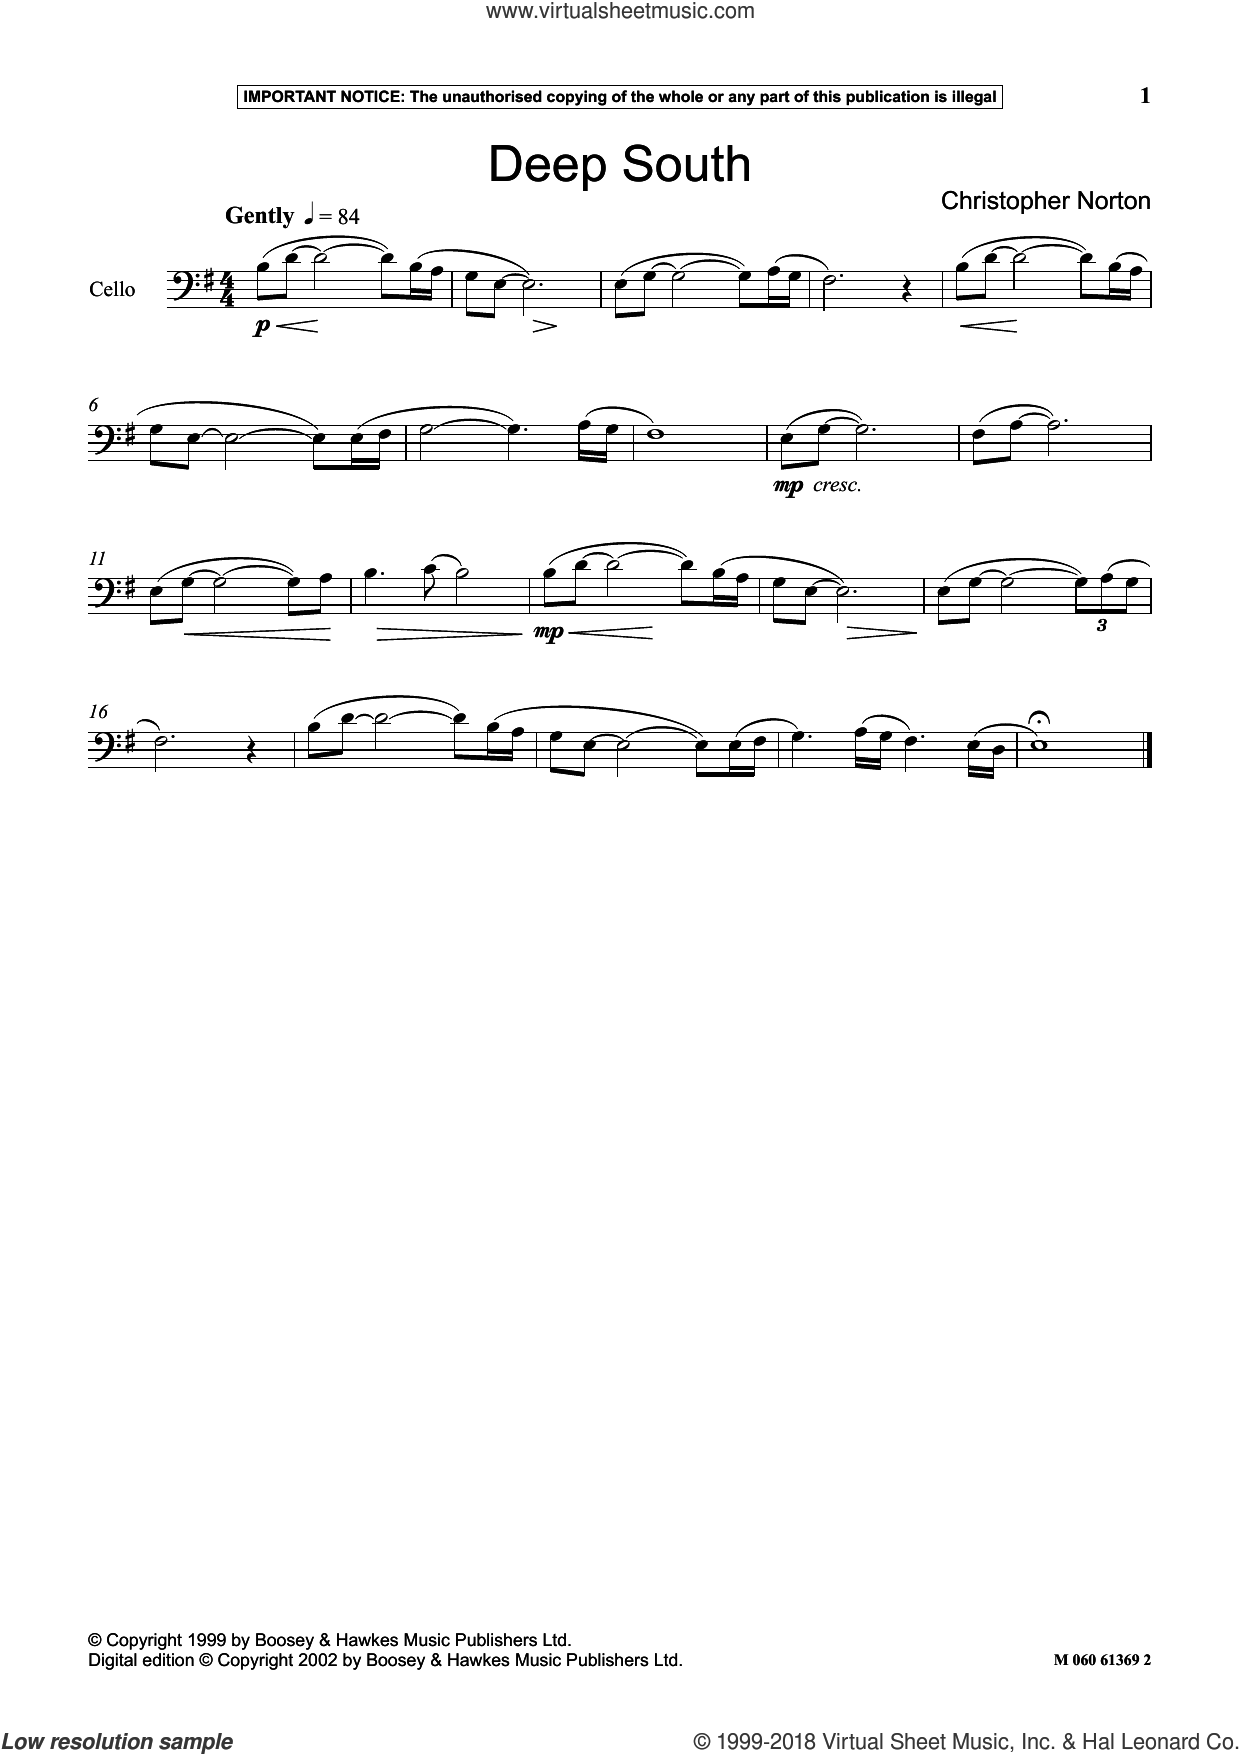 Deep South sheet music for cello solo by Christopher Norton, classical score, intermediate skill level